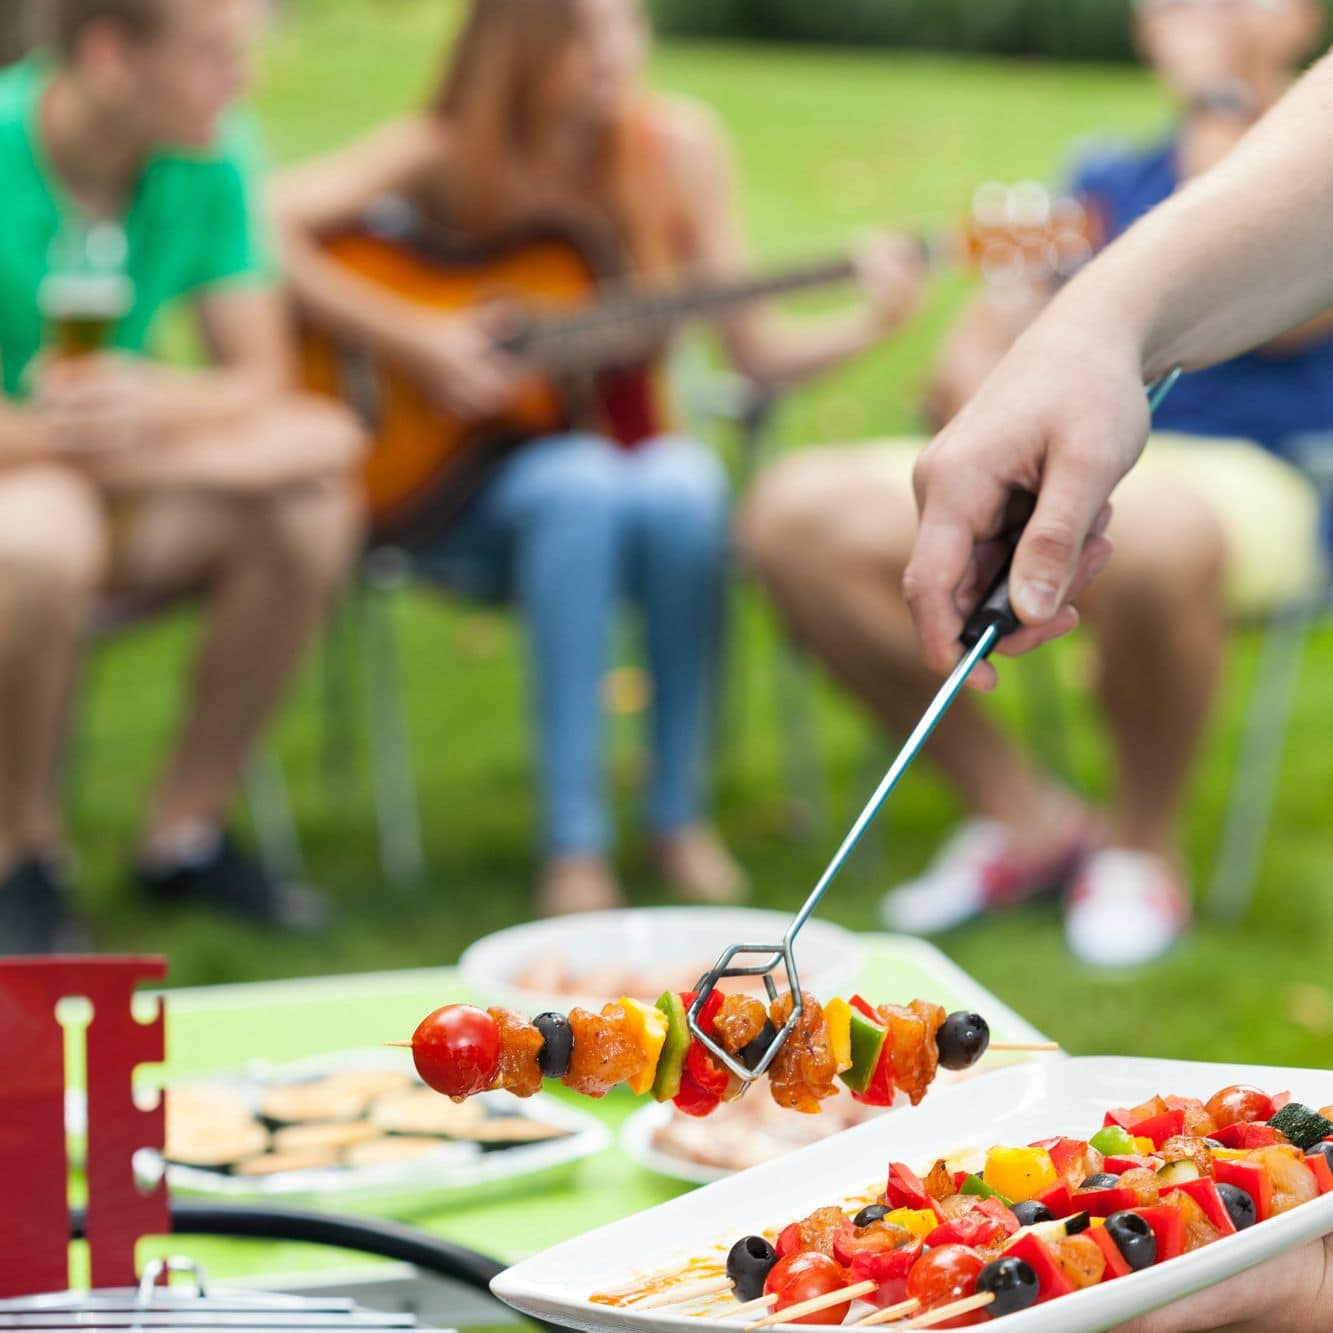 28 Backyard Barbecue Party Tips to Impress Your Guests without